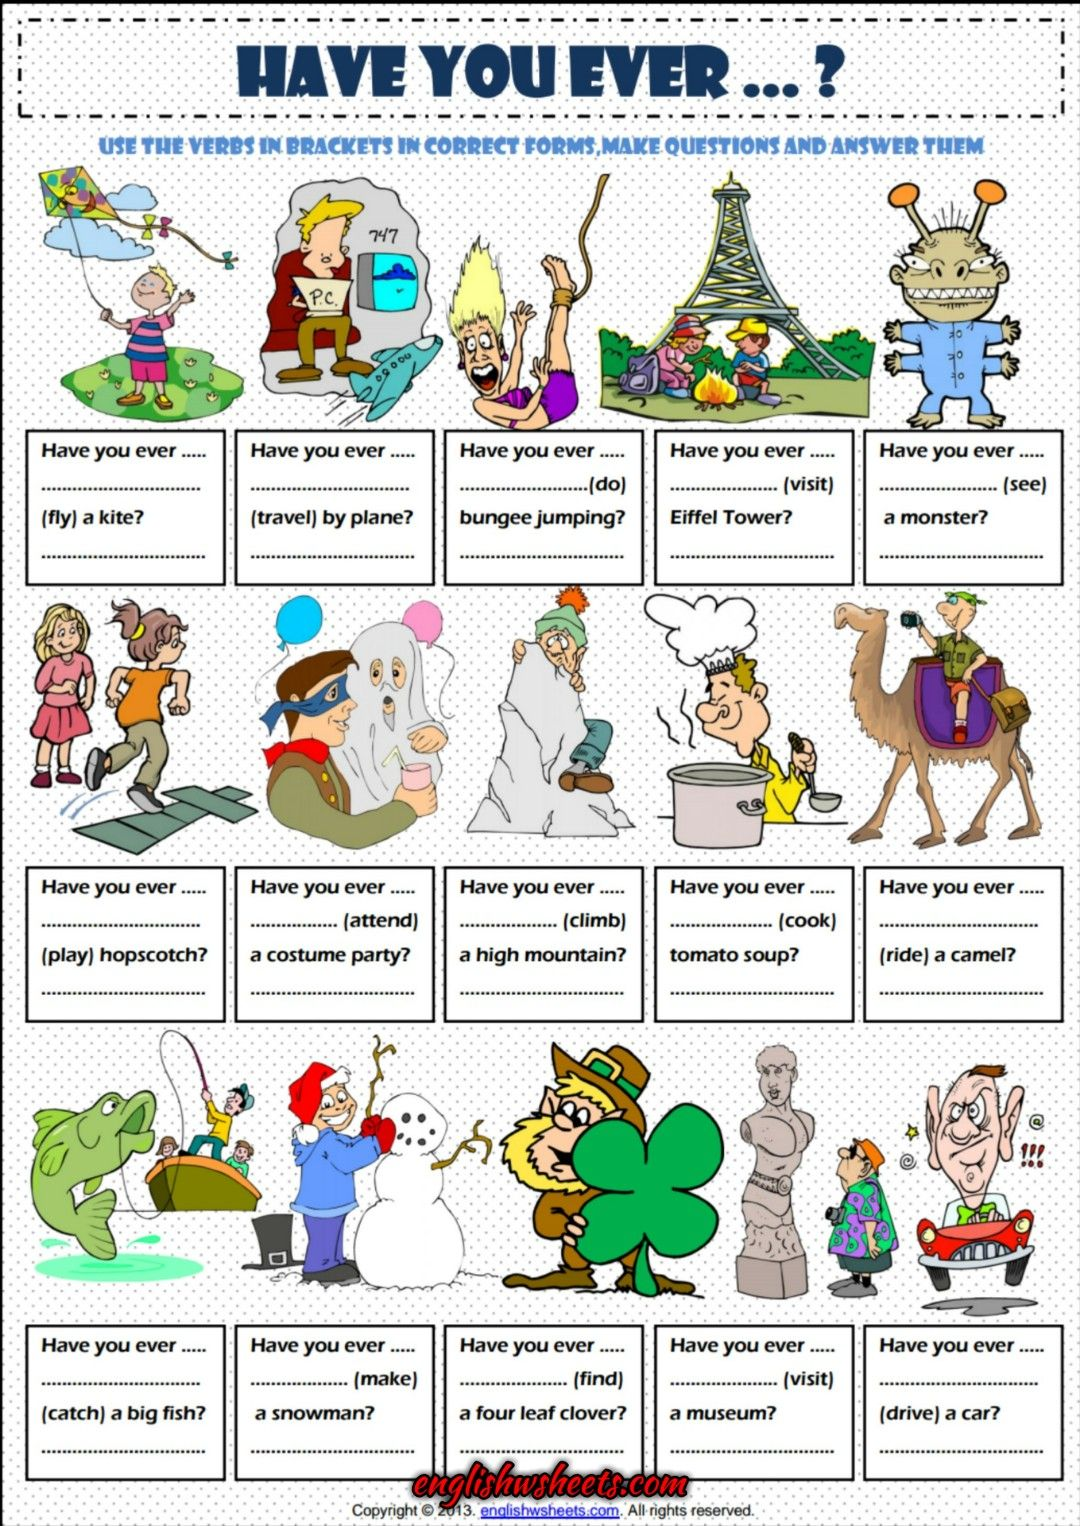 Have You Ever Present Perfect Tense Exercise Worksheet